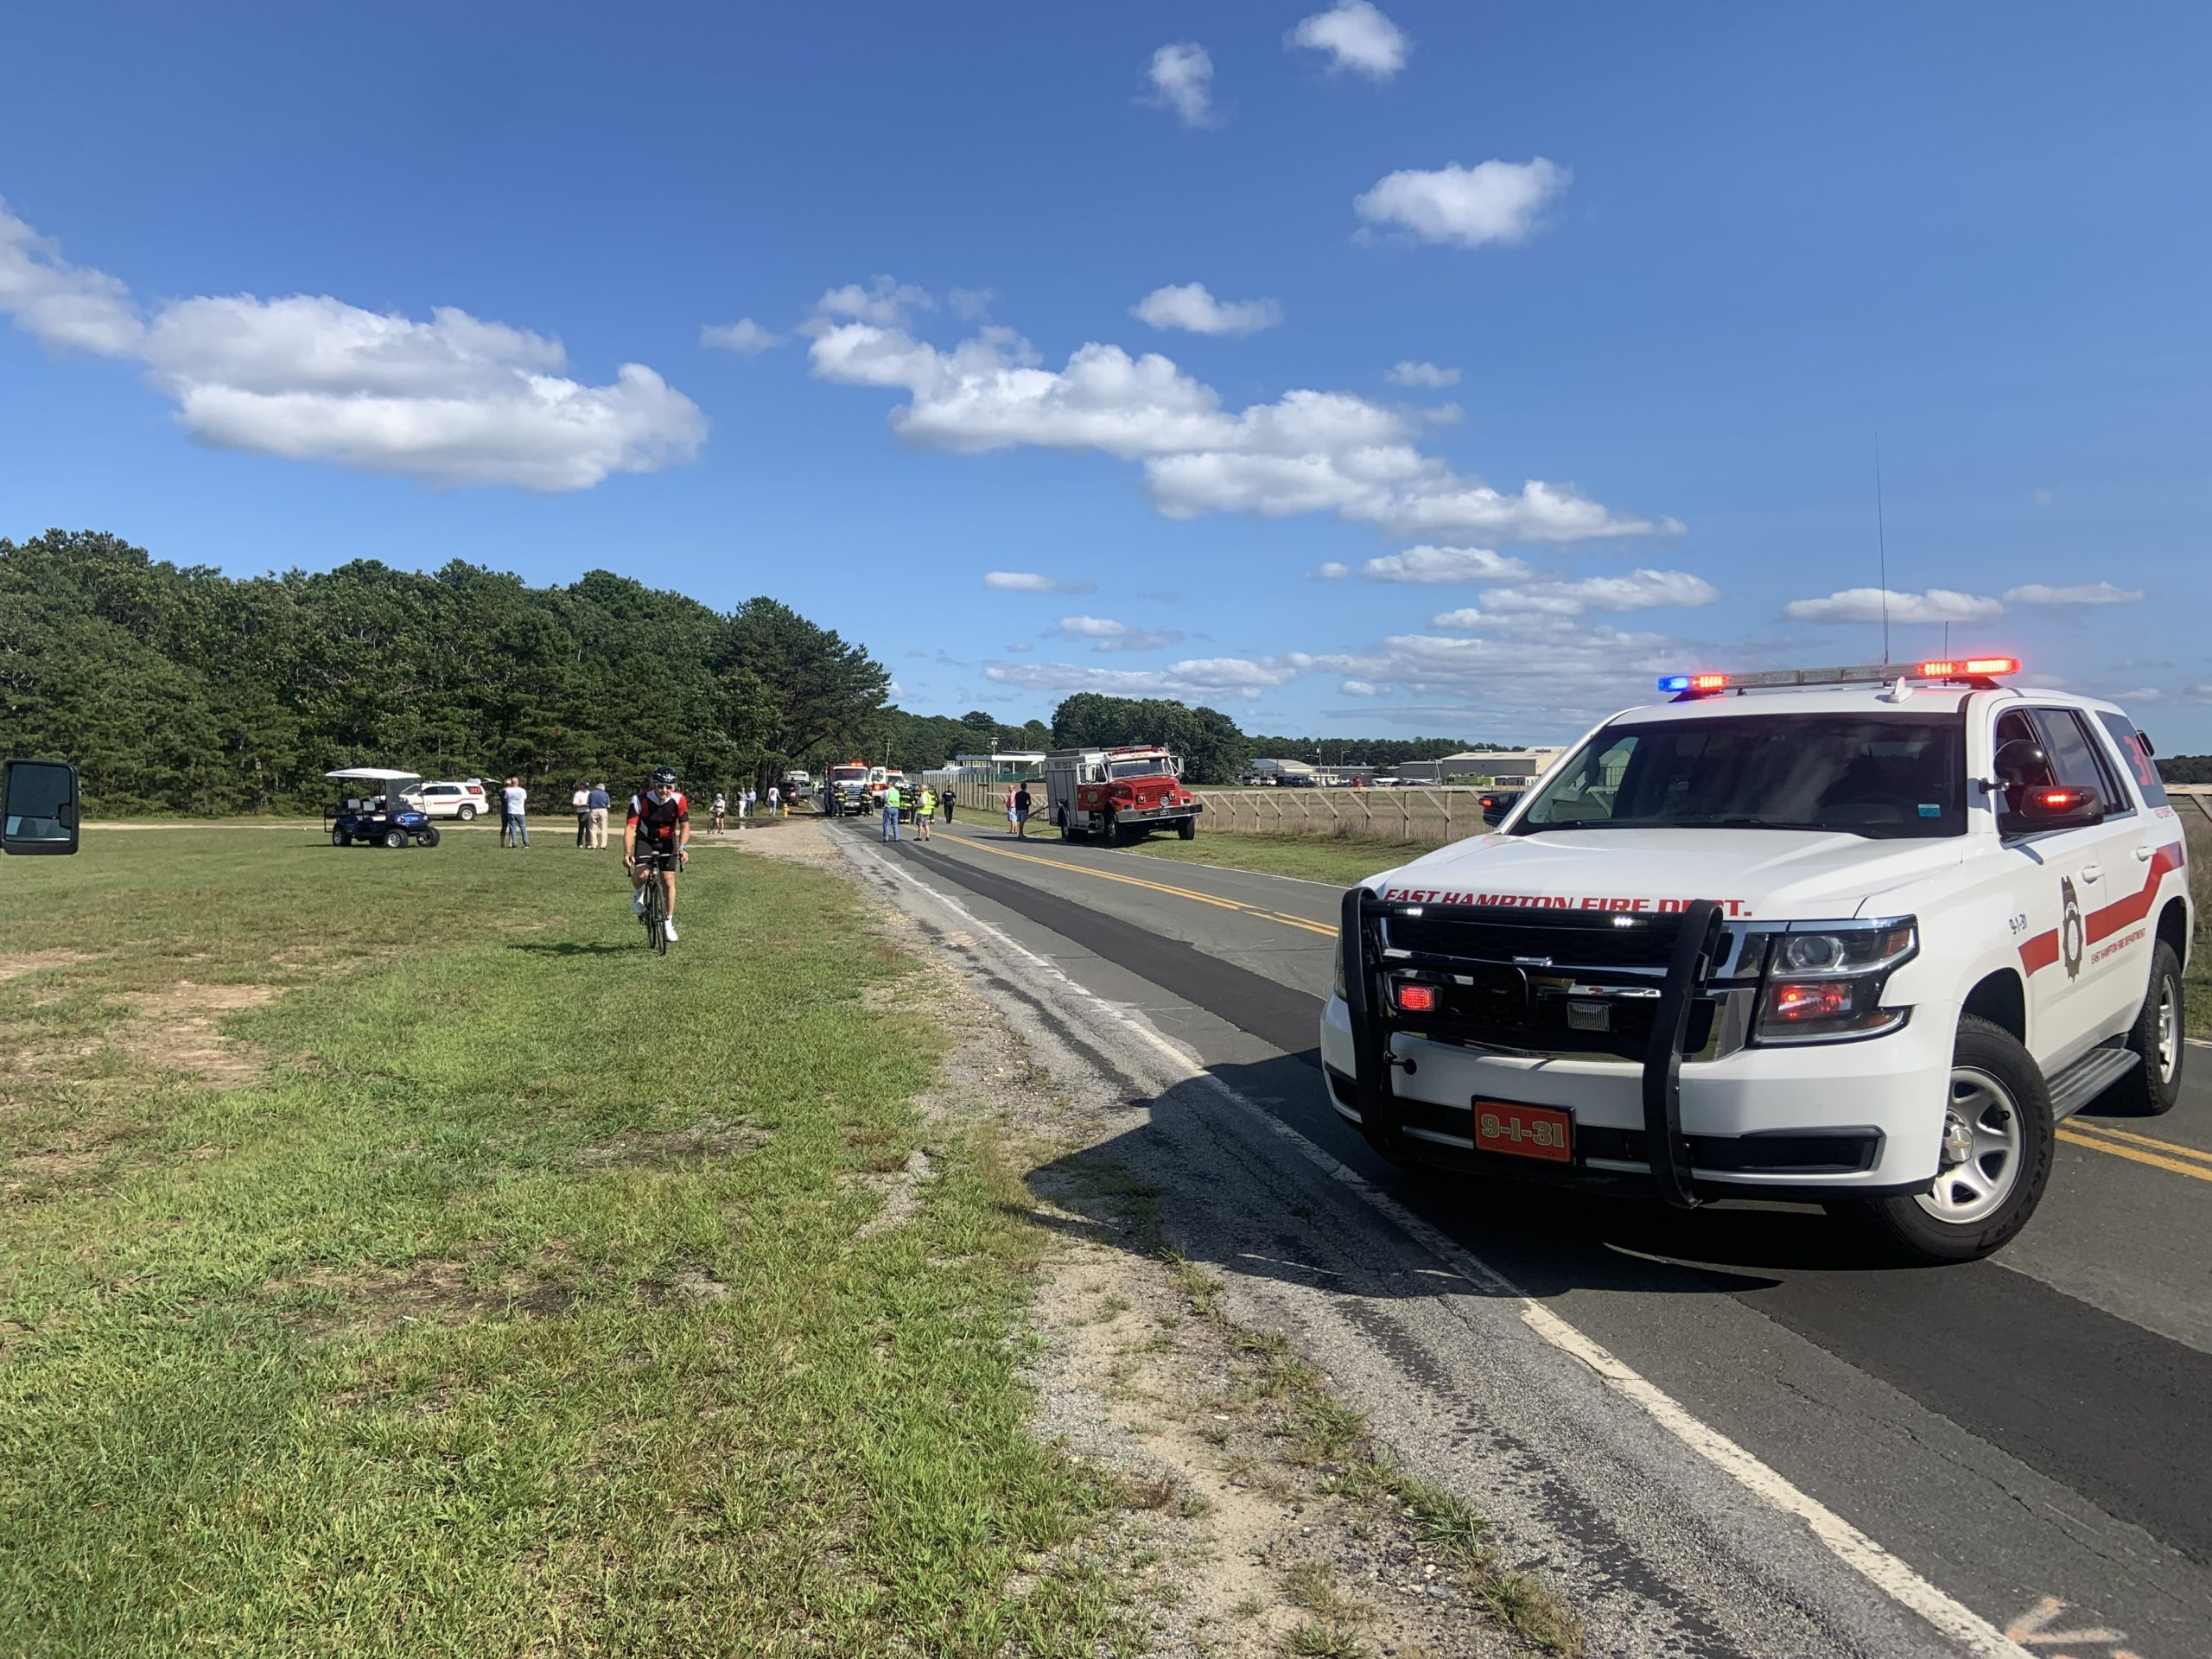 The scene on Daniel's Hole Road in East Hampton Friday afternoon after a small plane overshot the runway at East Hampton Airport, crashed through a fence, and came to a rest across the road. Nobody was injured in the mishap. STEPHEN J. KOTZ